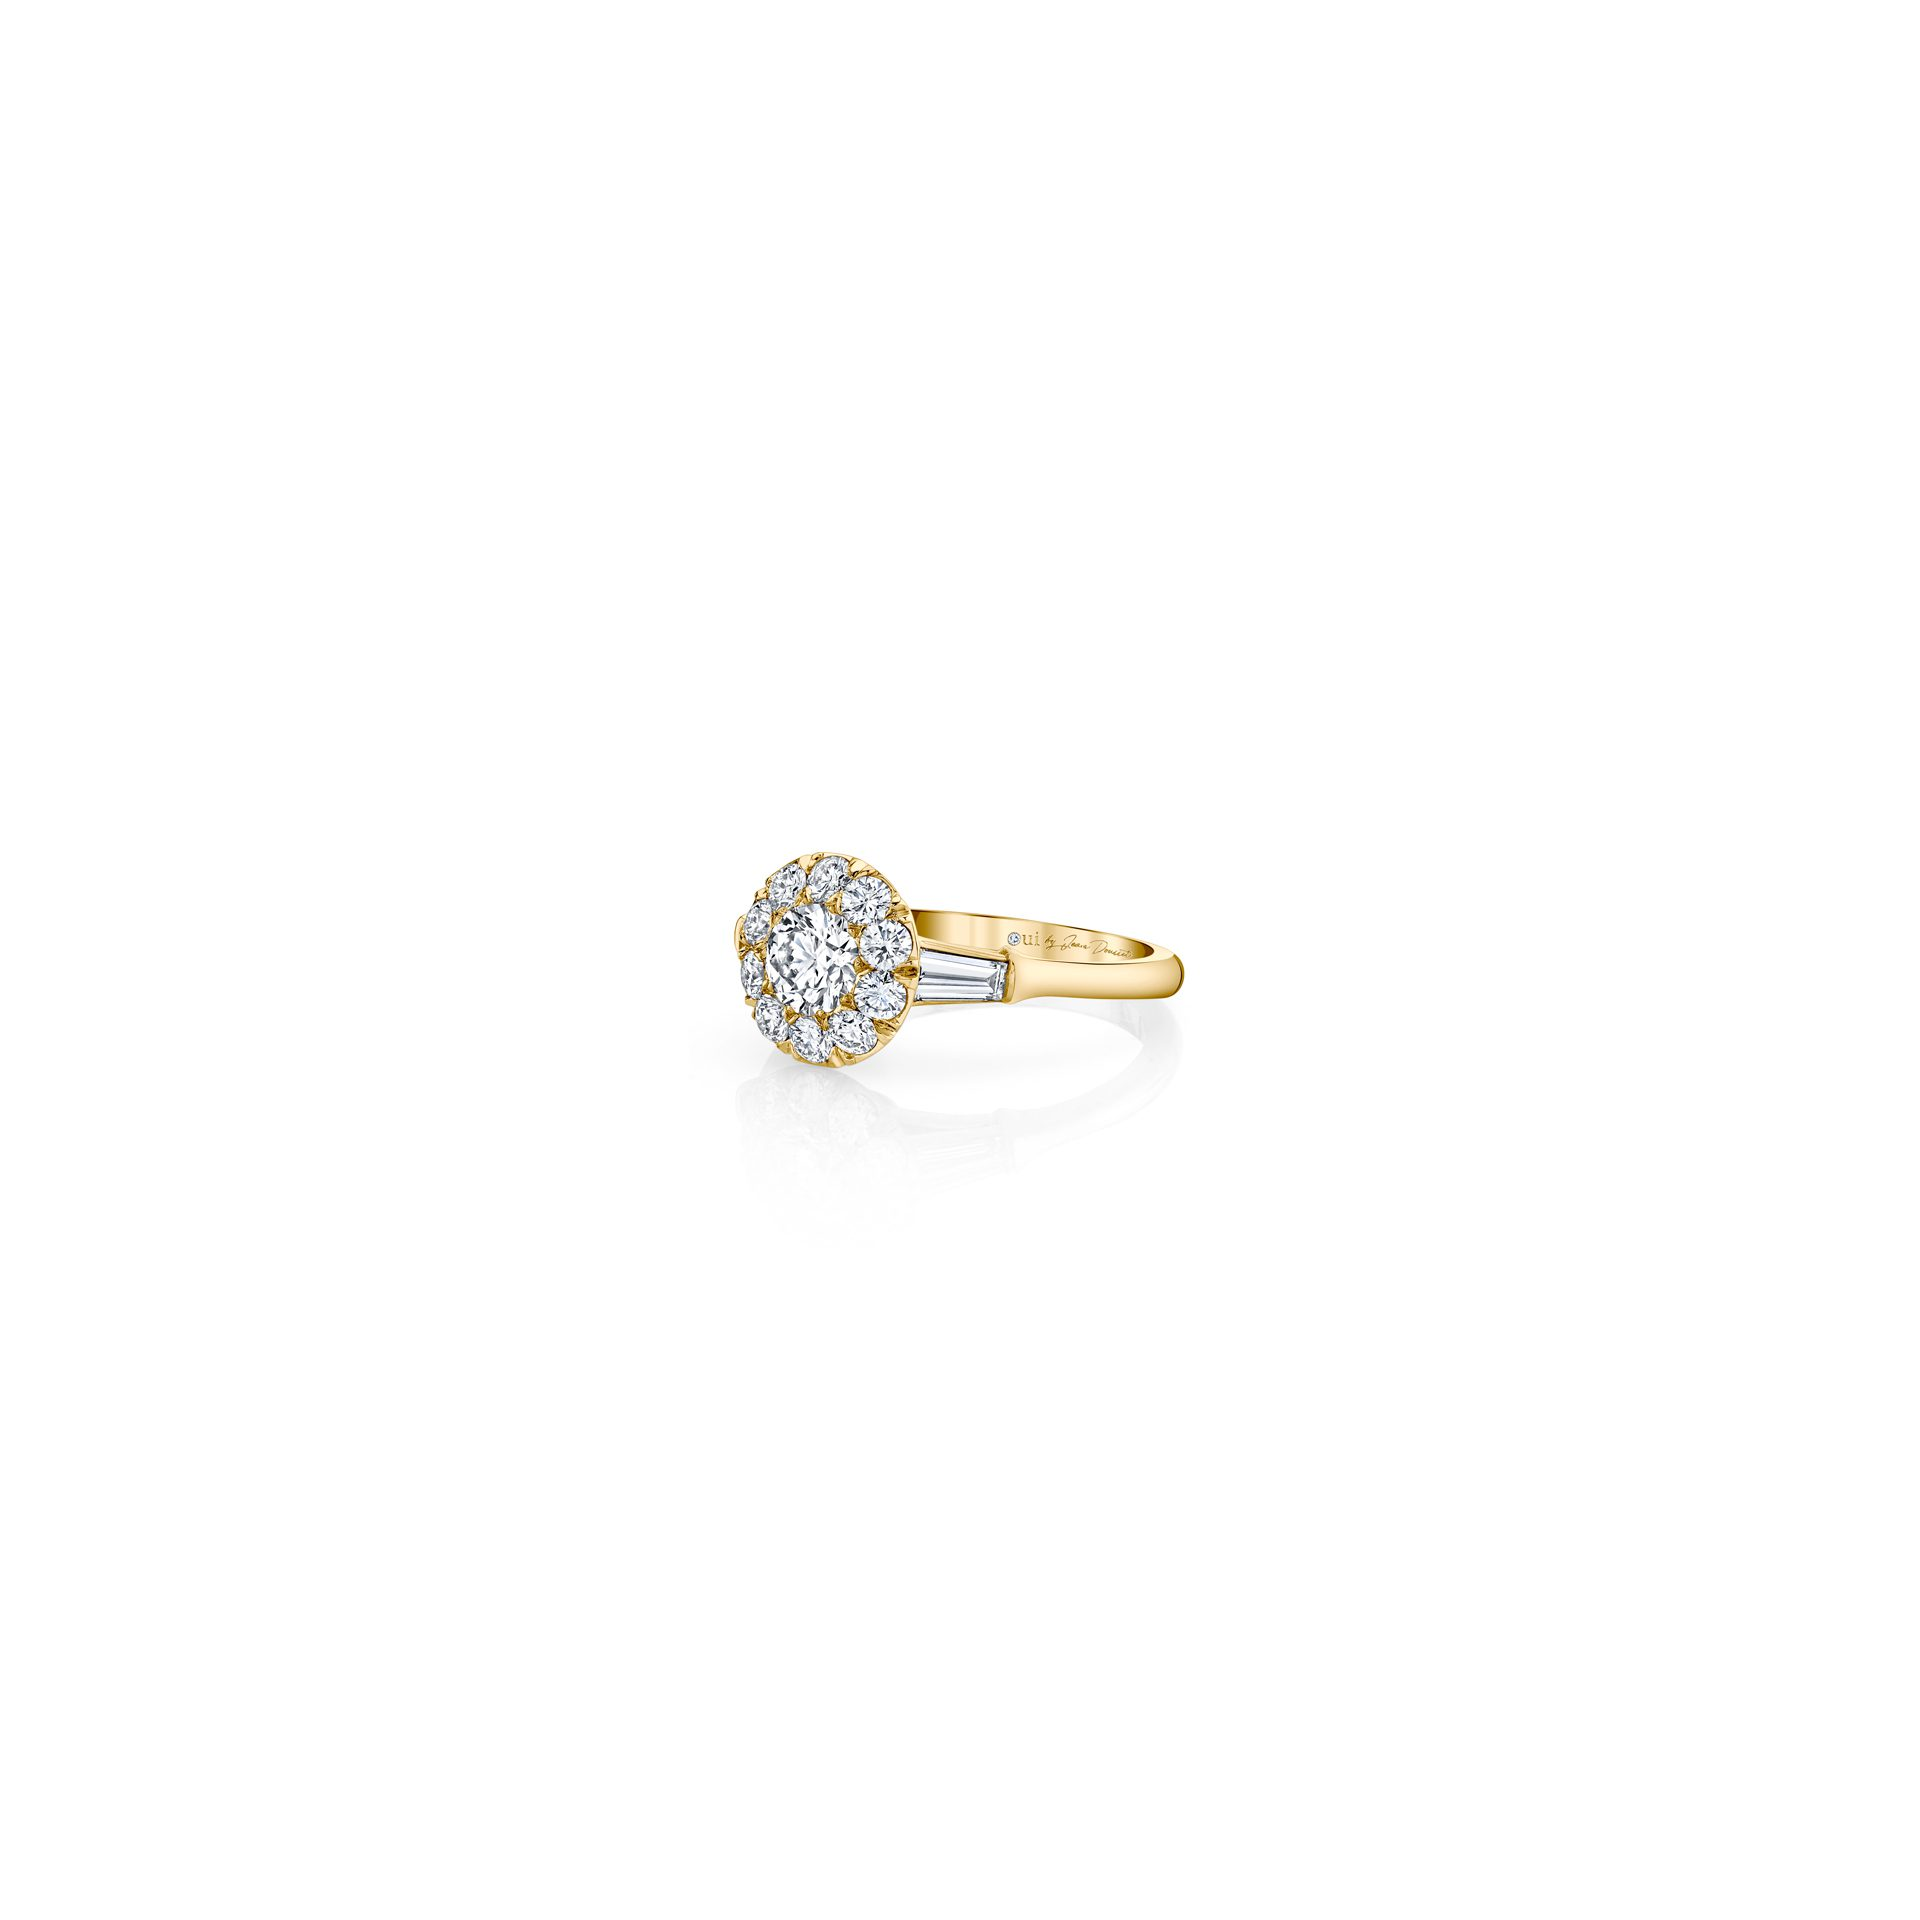 Madeline Round Brilliant Seamless Solitaire™ Three Stone Engagement Ring with tapered baguette diamond side stones in 18k Yellow Gold Side View by Oui by Jean Dousset